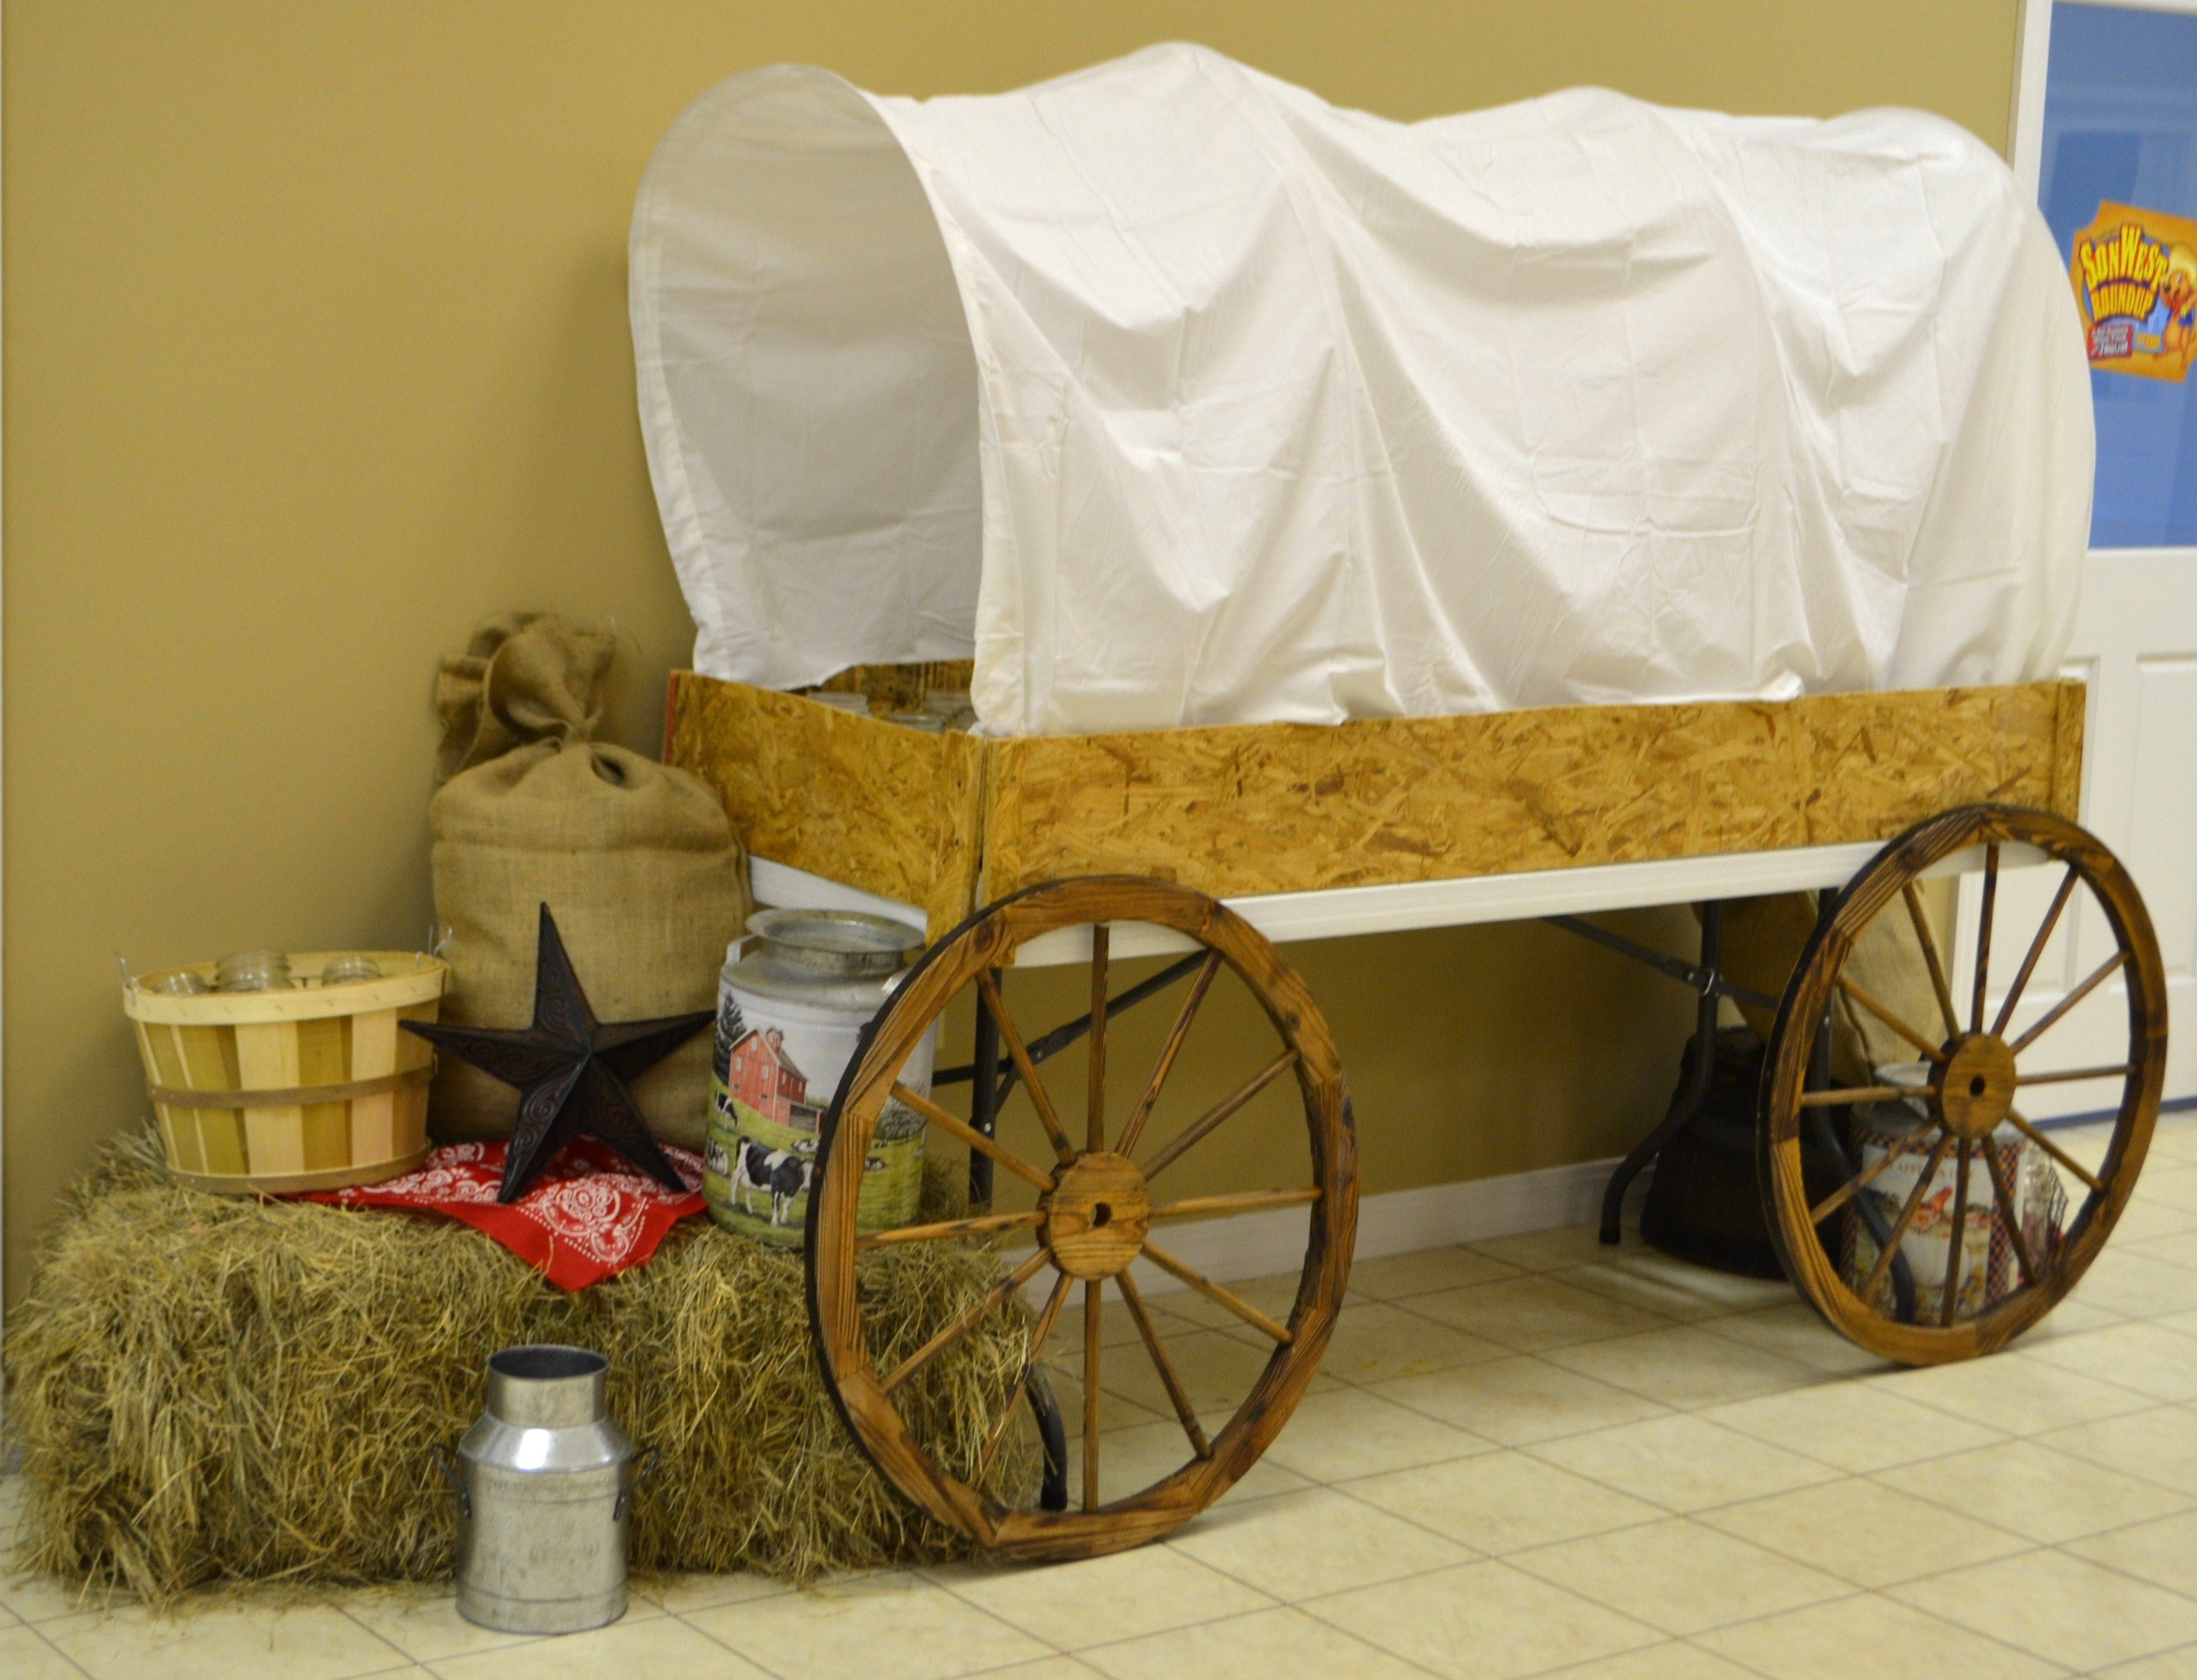 Covered Wagon ~ The Base Is A Folding Table With Wire Used For The Frame And